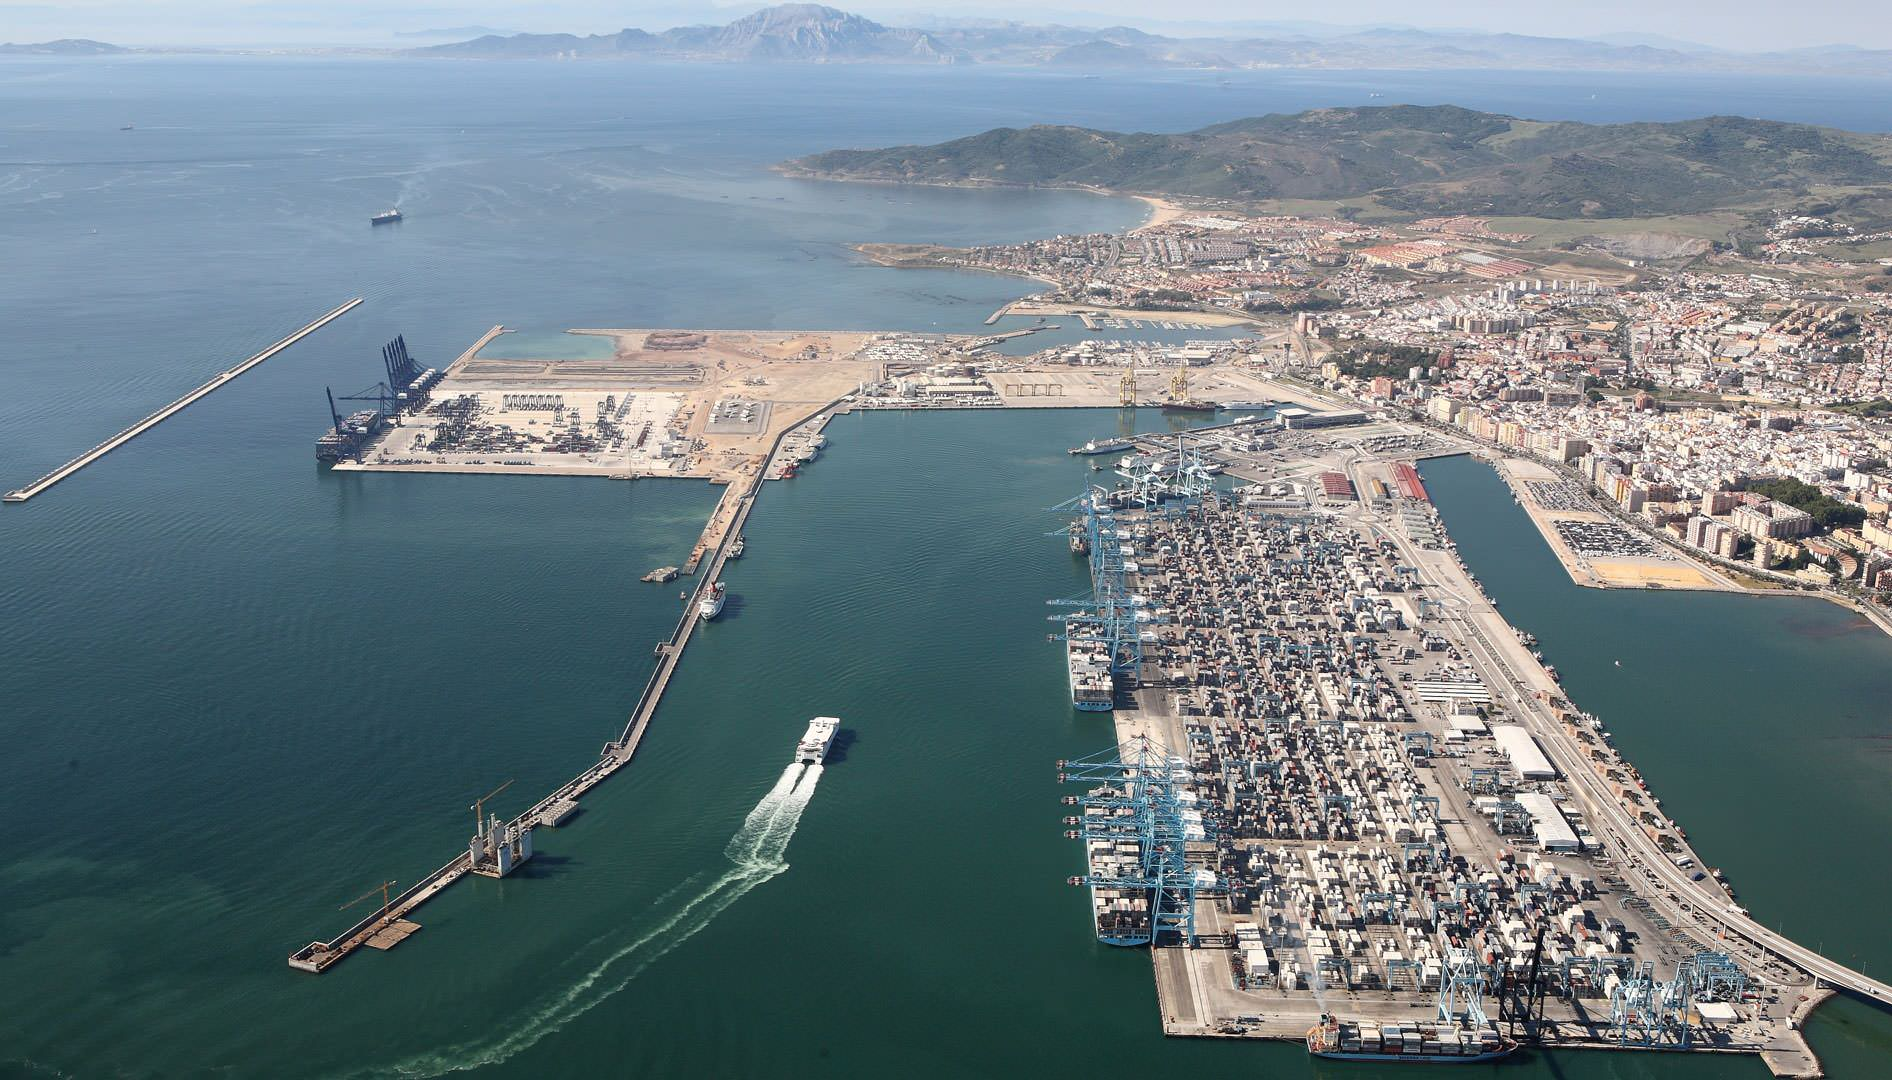 Aerial View Port of Algeciras, in the Strait of Gibraltar.